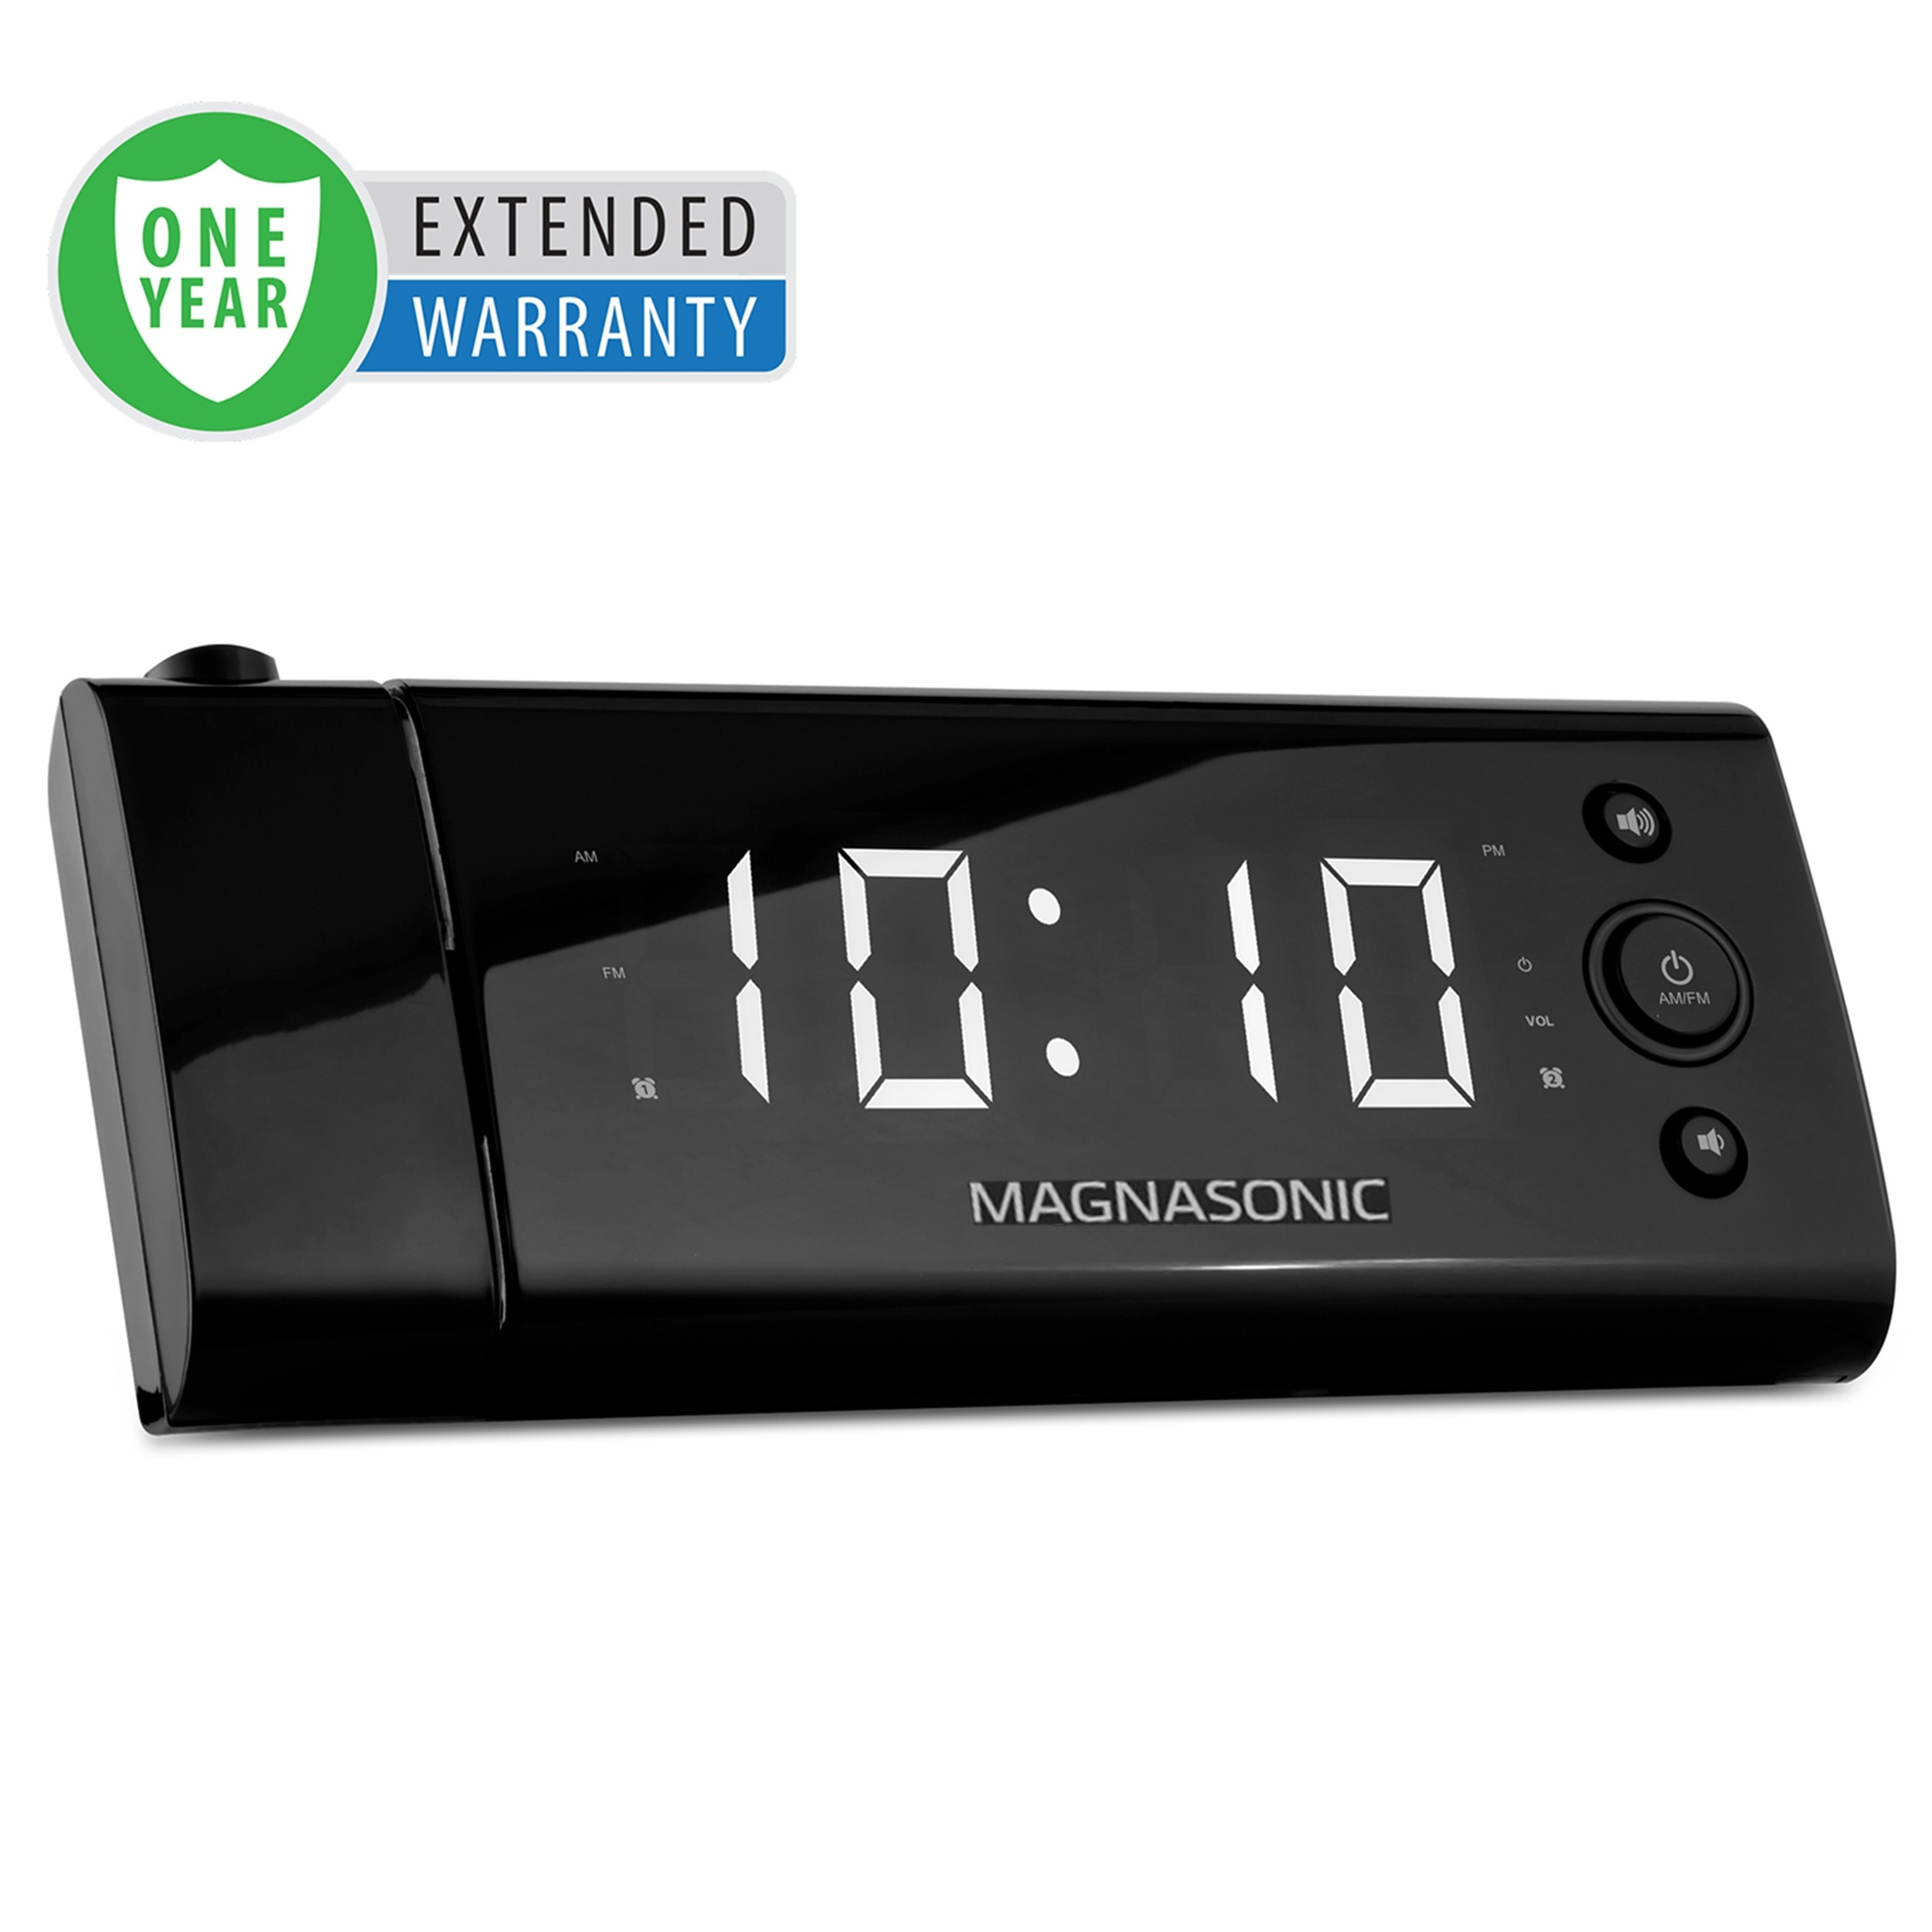 1 Year Extended Warranty For EAAC475W